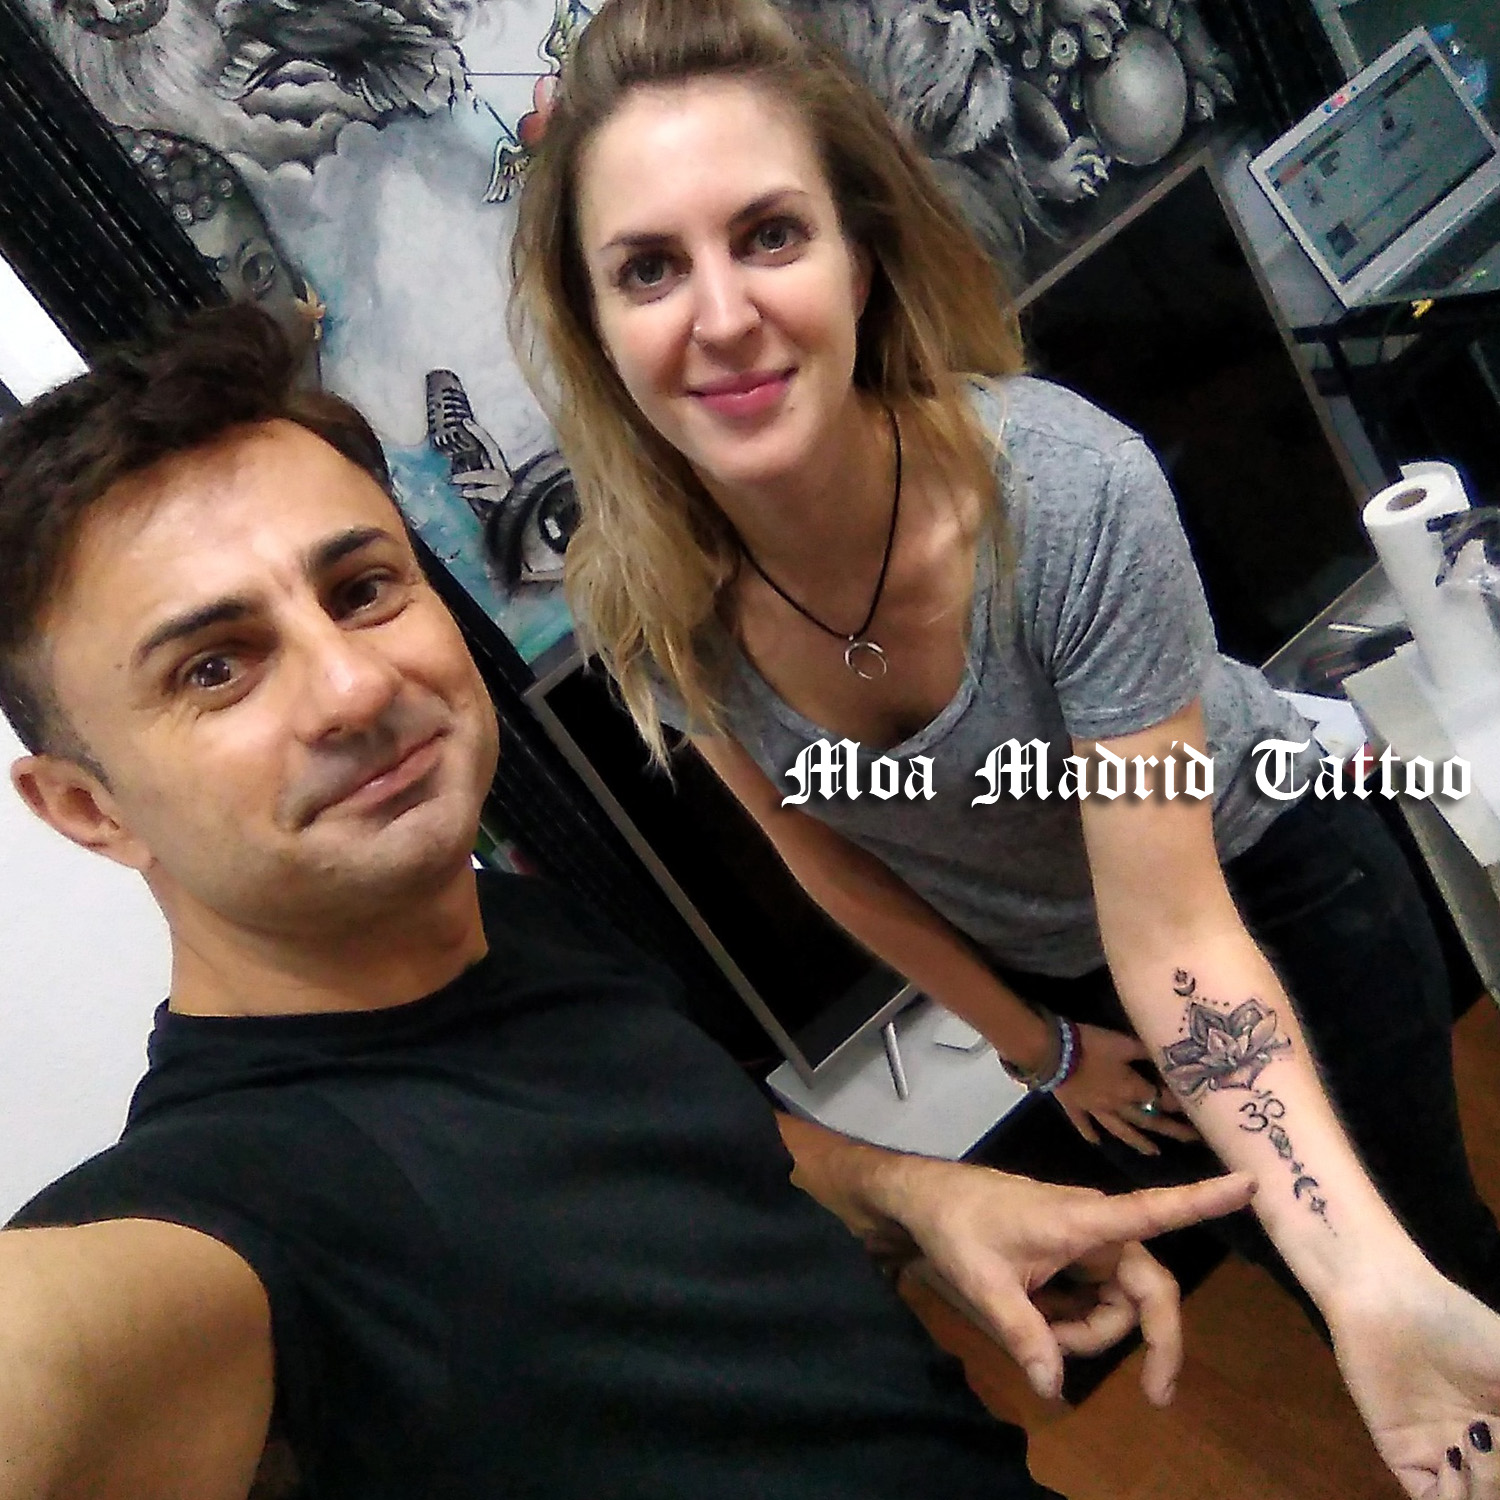 Tu mejor tattoo en Moa Madrid Tattoo